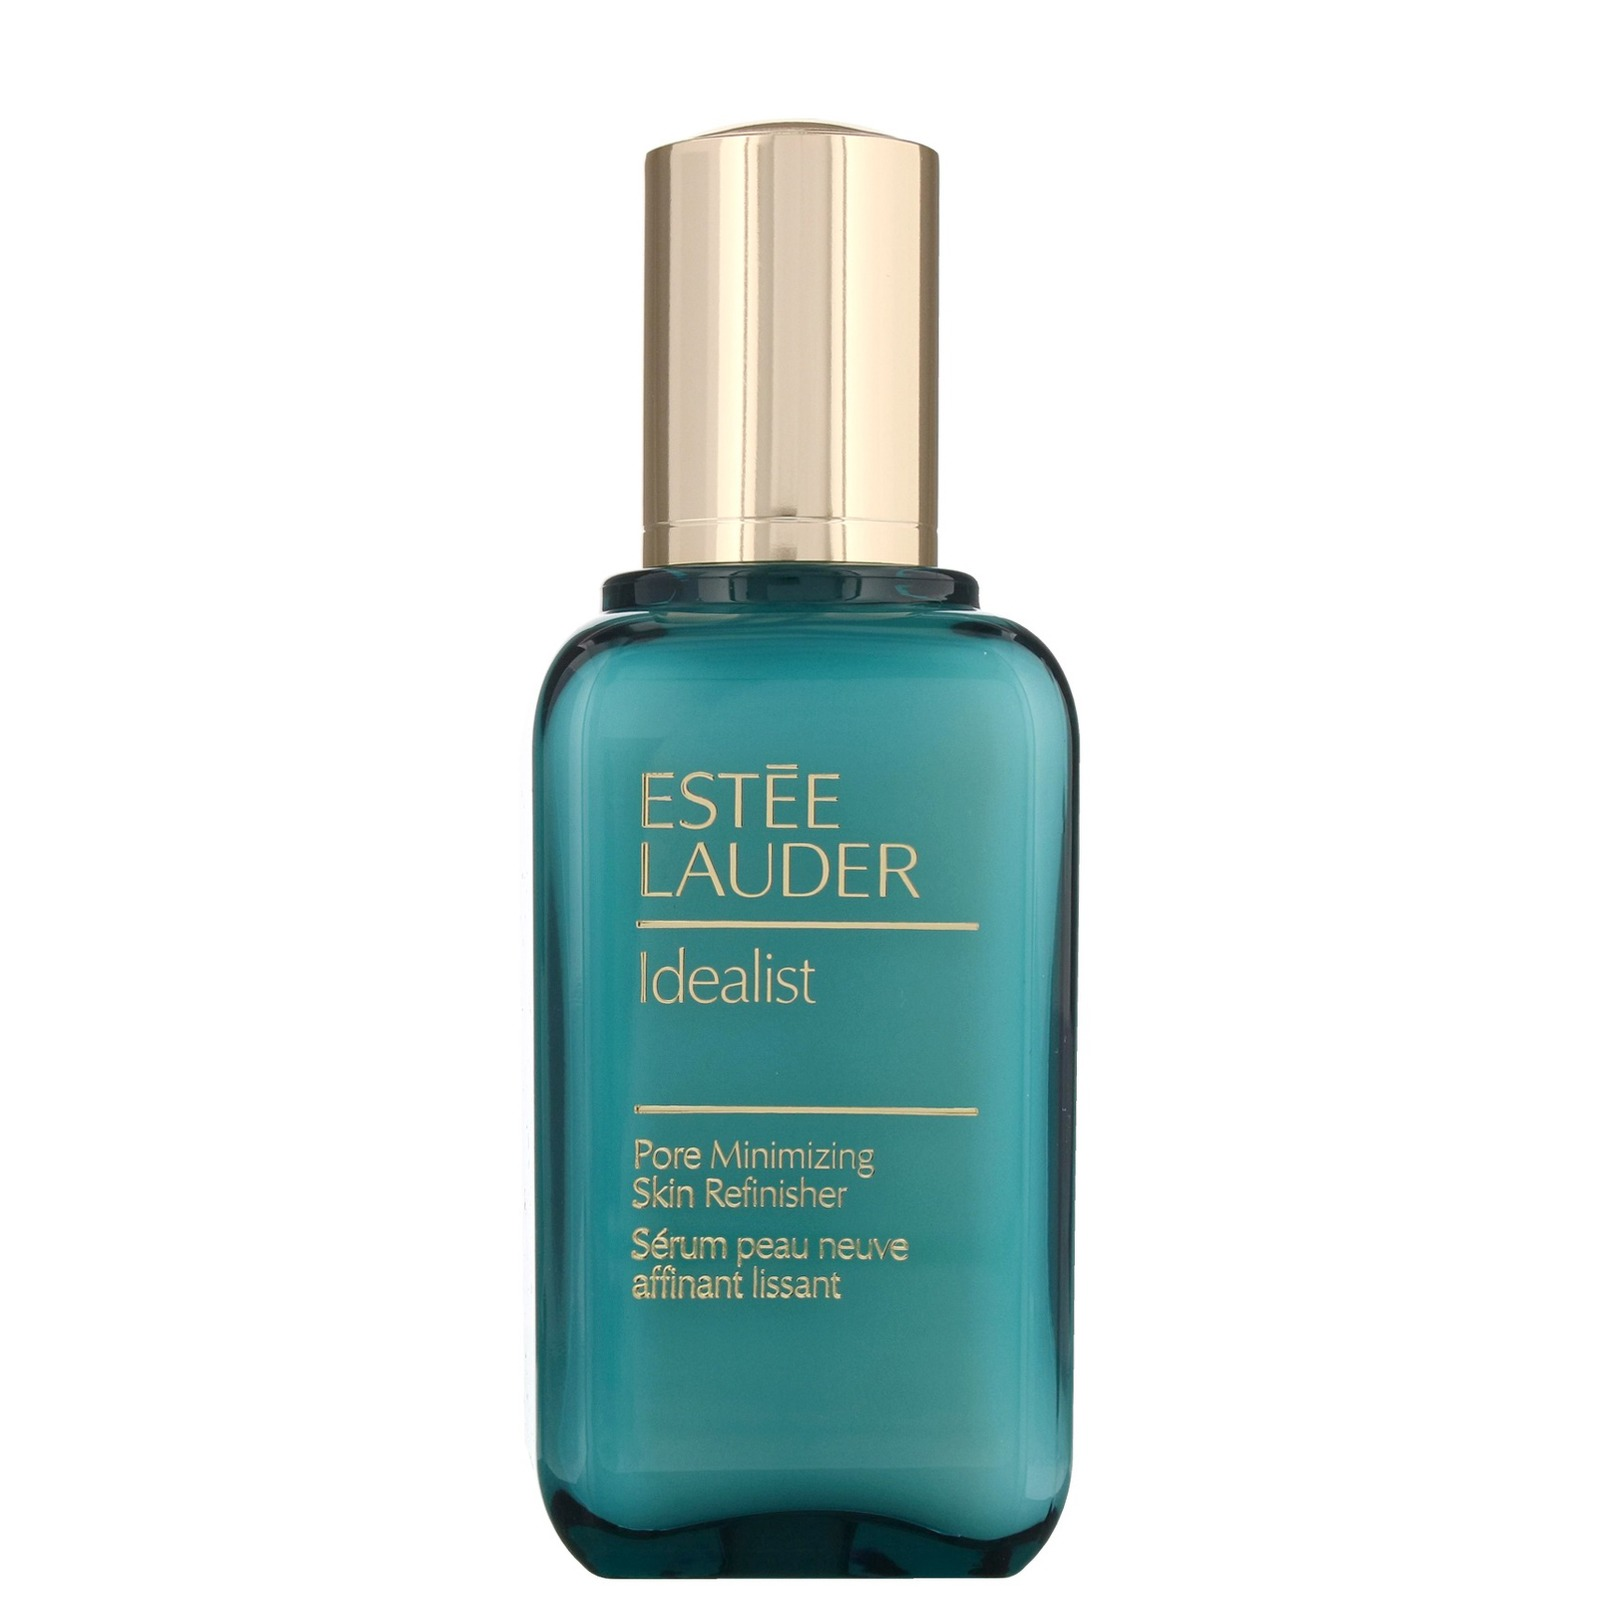 Estee Lauder Idealist Pore Minimizing Skin Refinisher All Skin